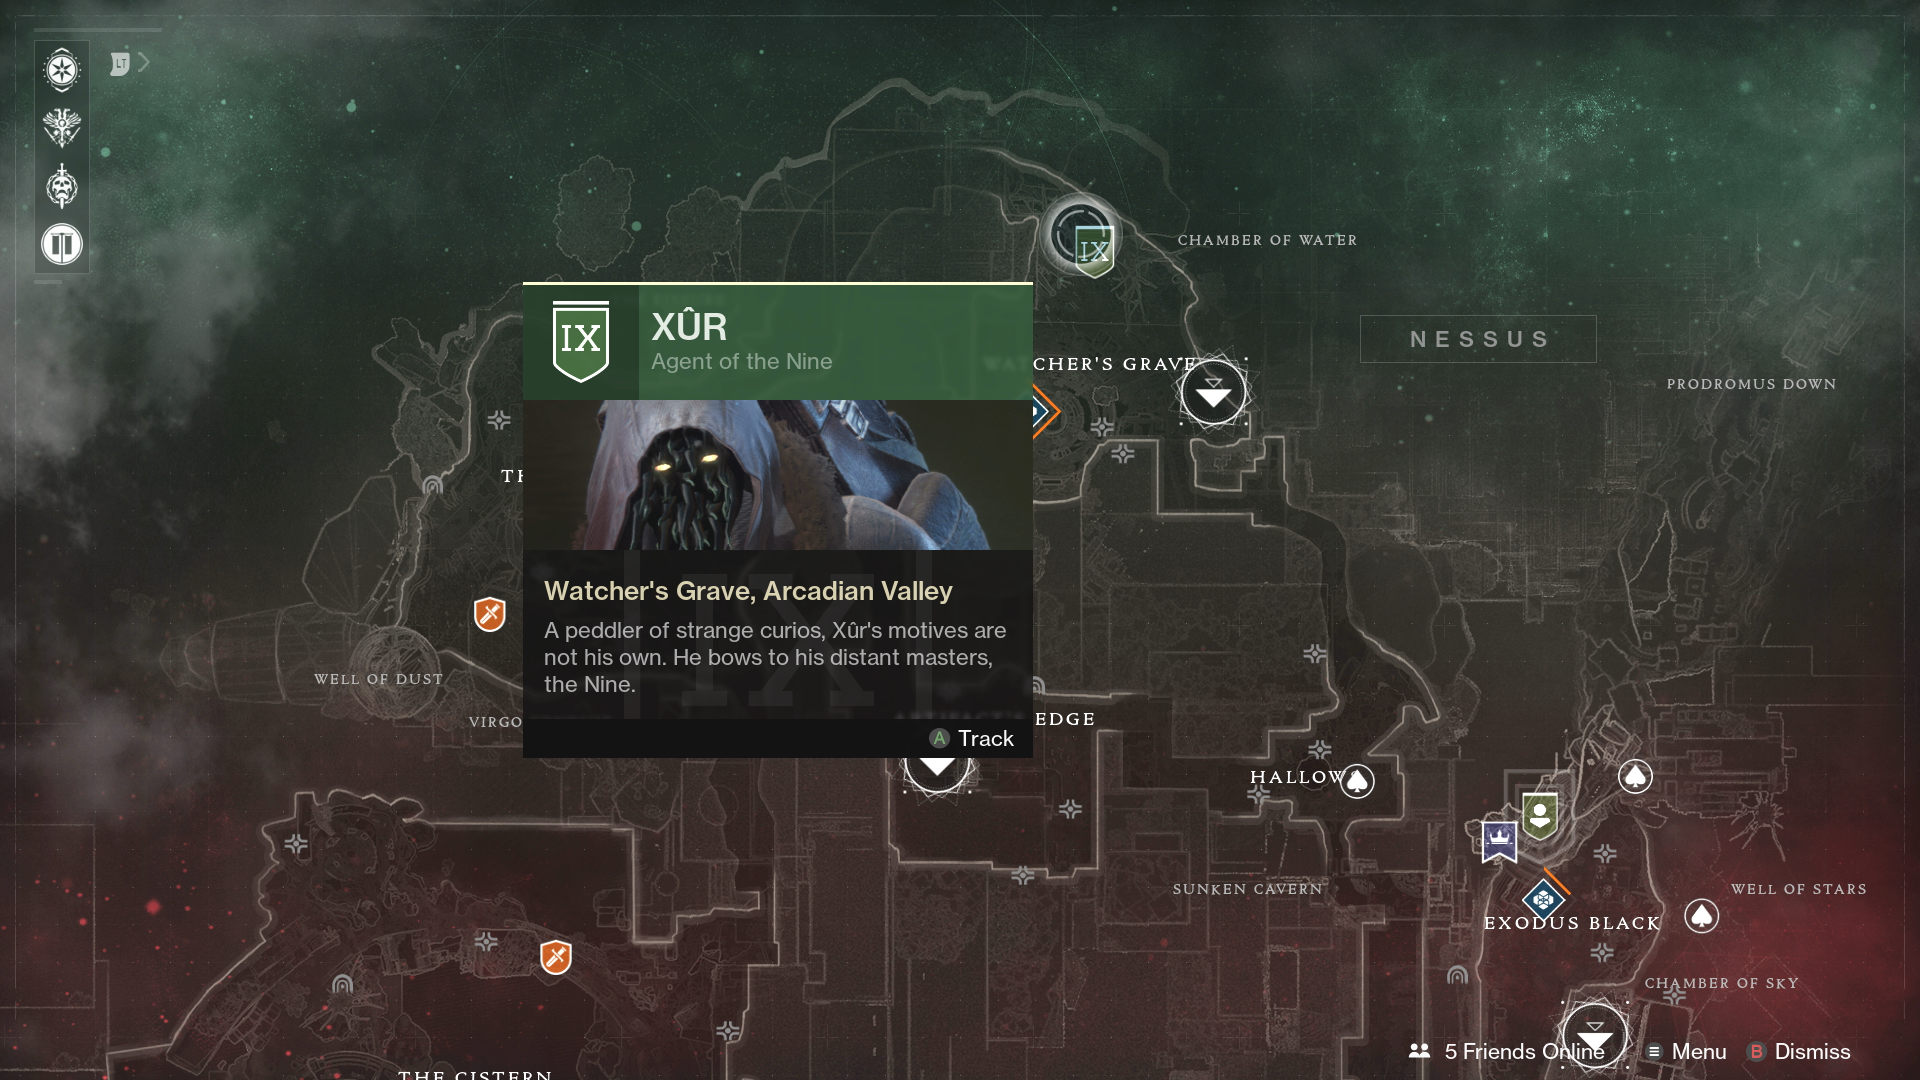 Where Is Xur Today Video